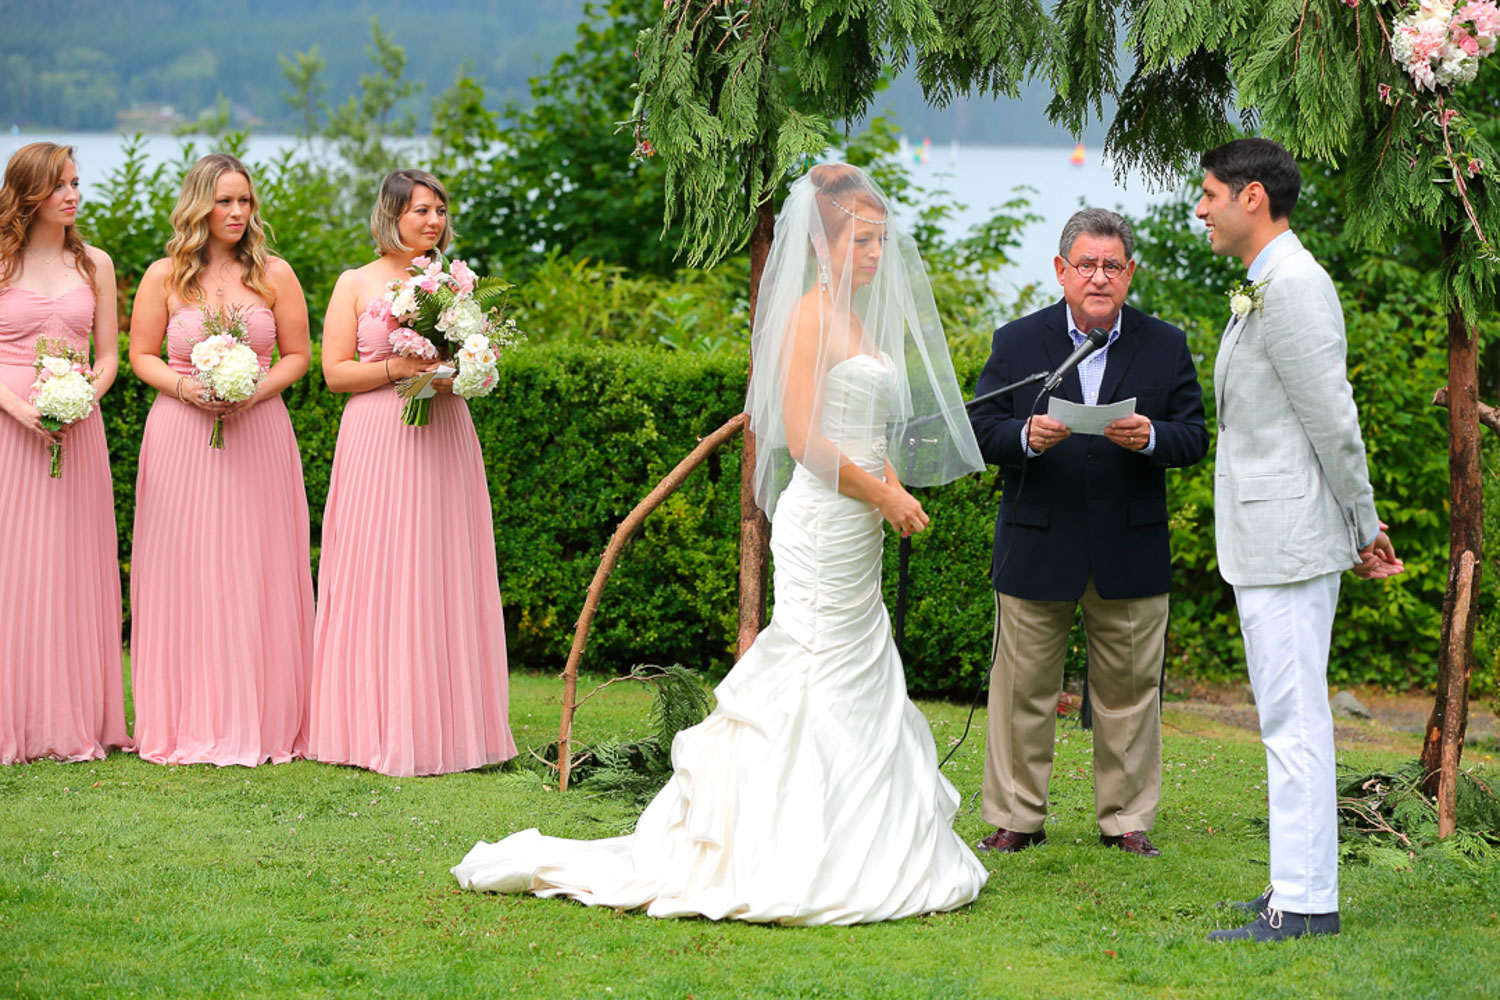 Wedding Photos Lake Quinault Lodge Washington29.jpg